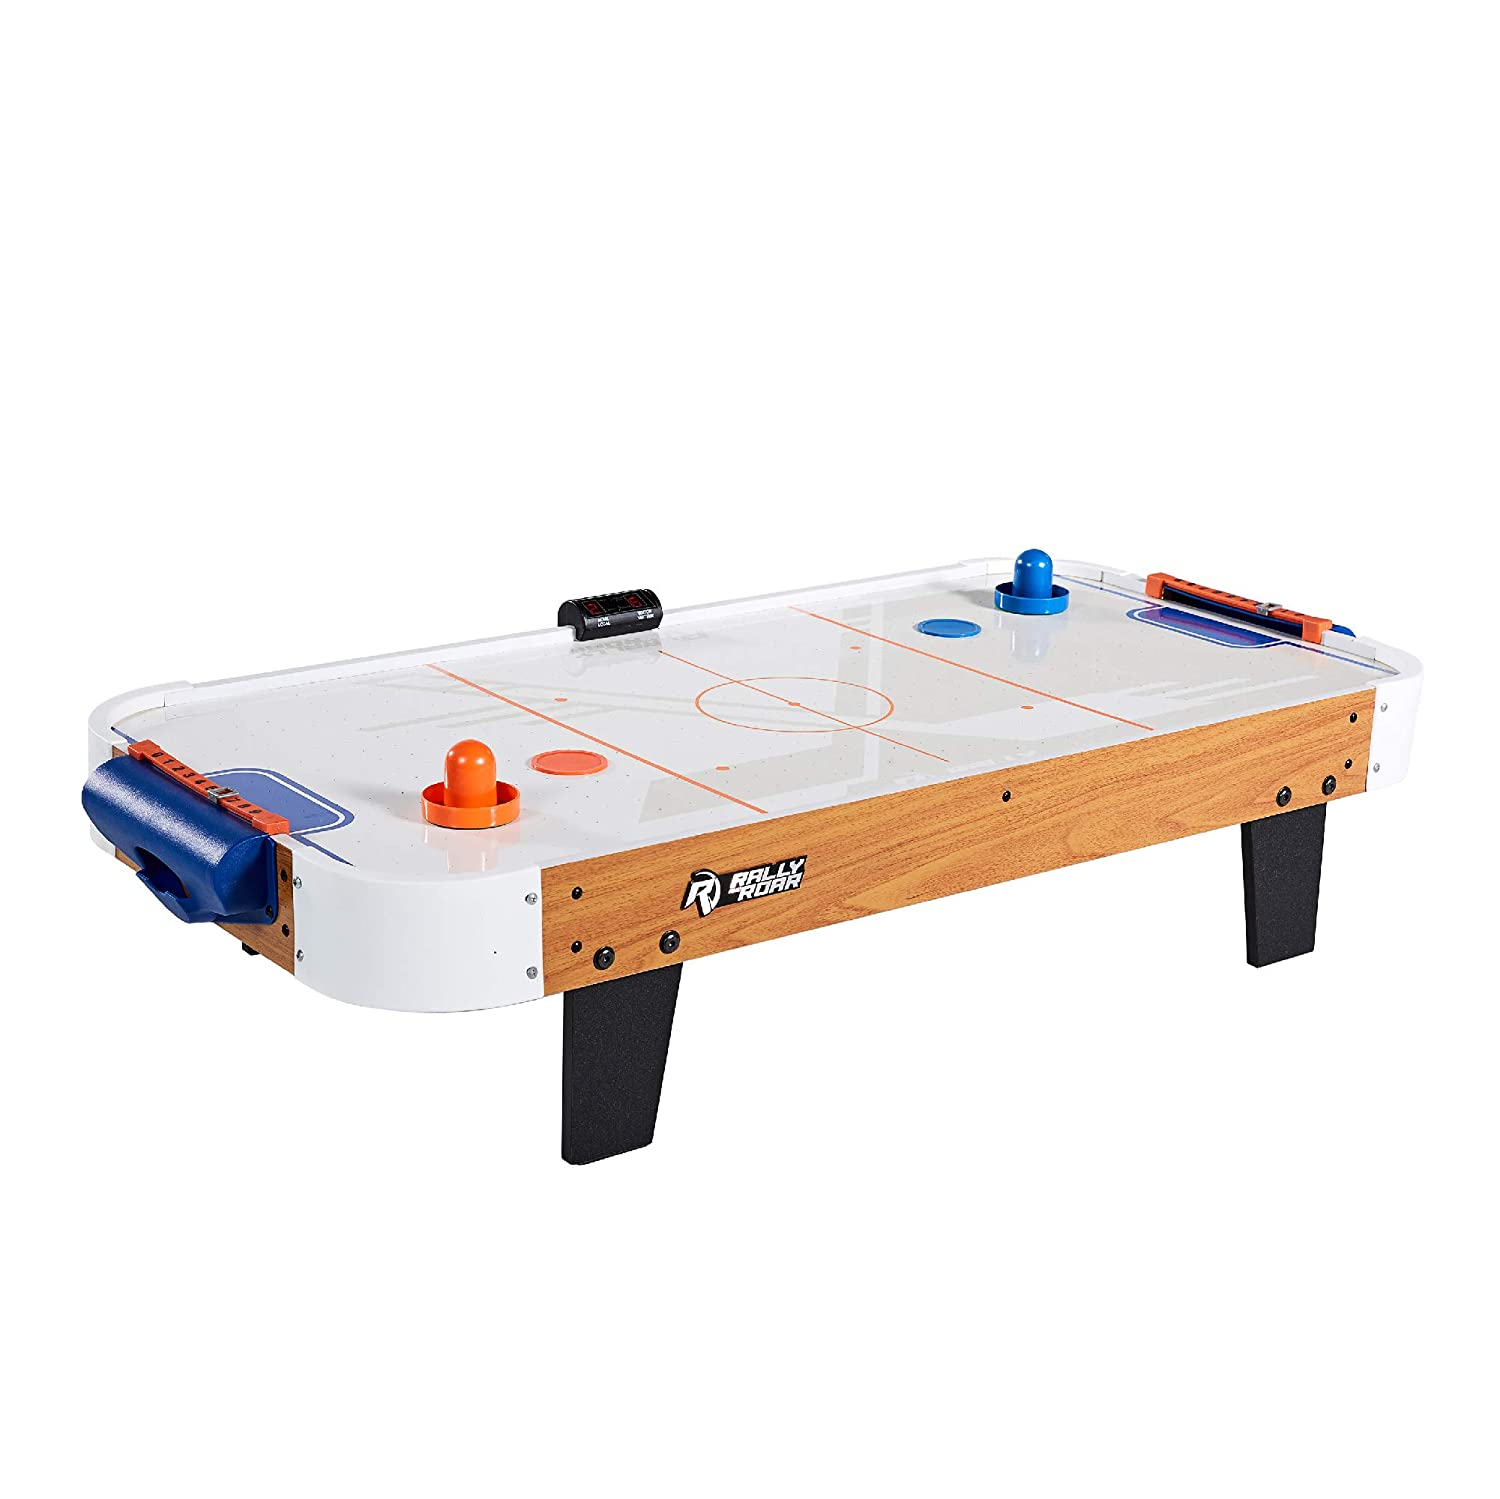 Tabletop Air Hockey Table, Travel-Size, Lightweight - Fun Arcade Games and Accessories for Kids